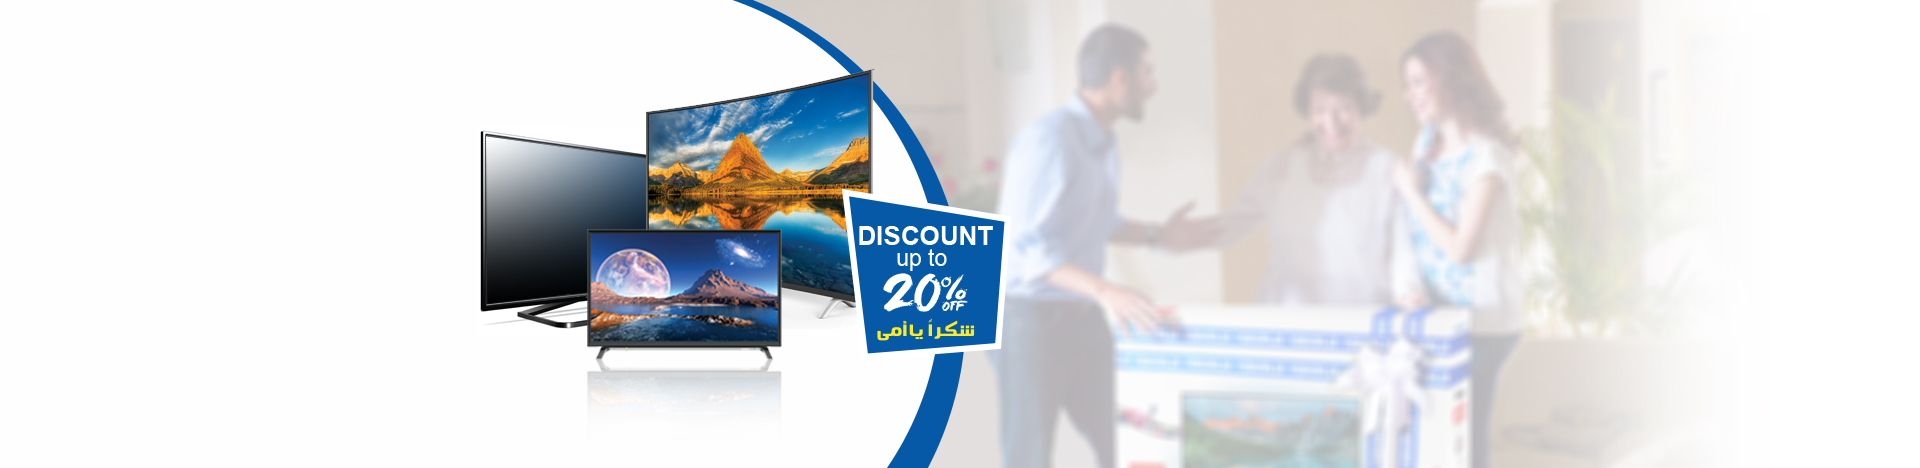 LED TVs and Sound System Offers & Discount